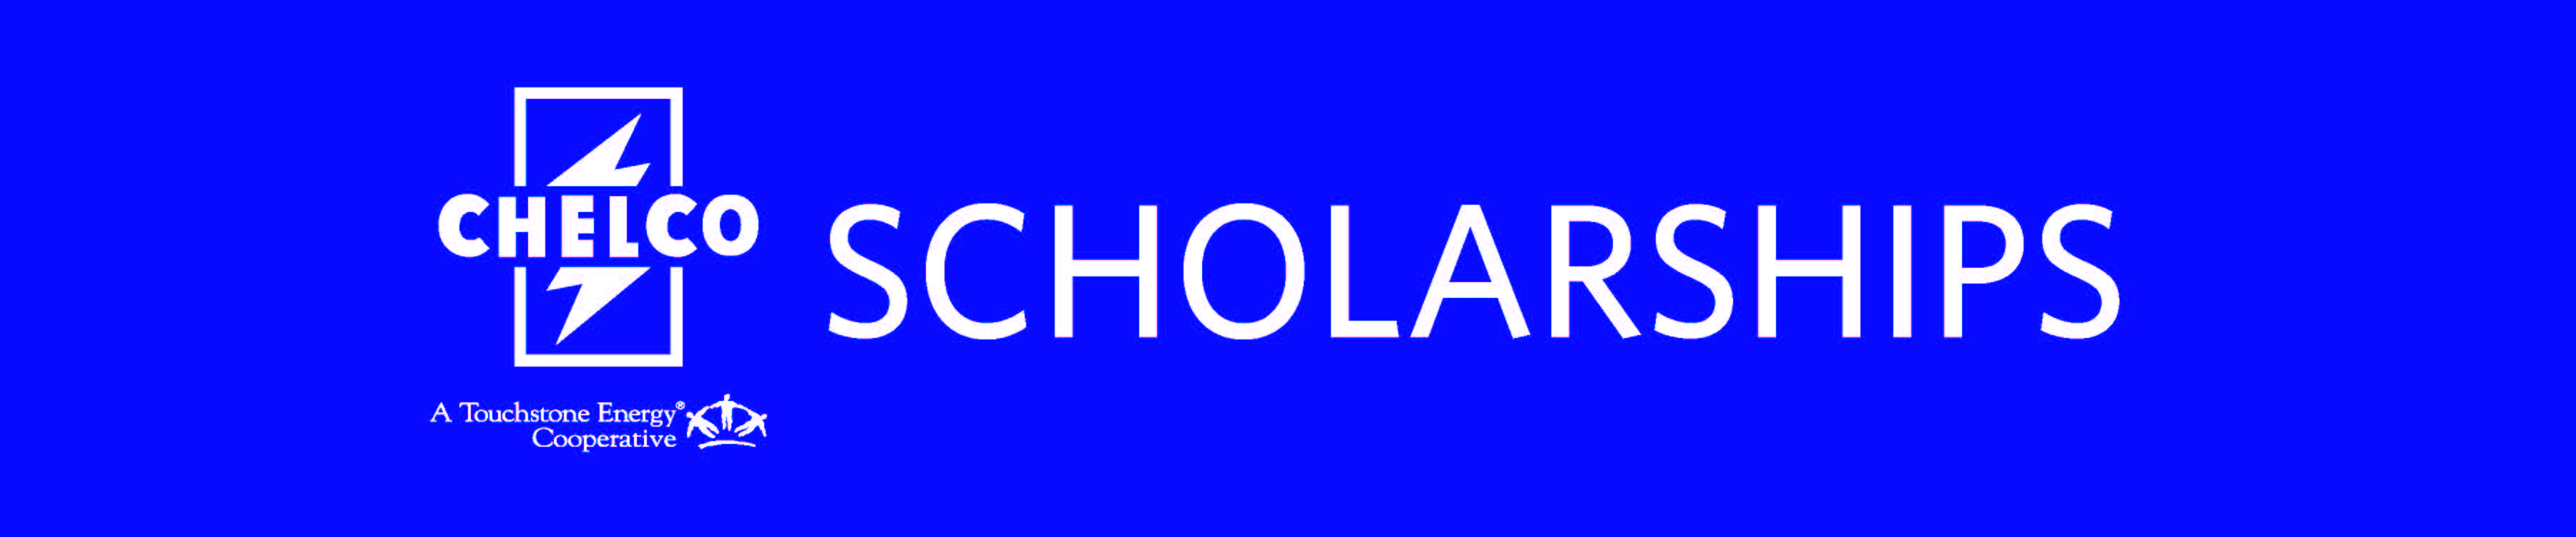 Scholarships%20website%20banner.jpg